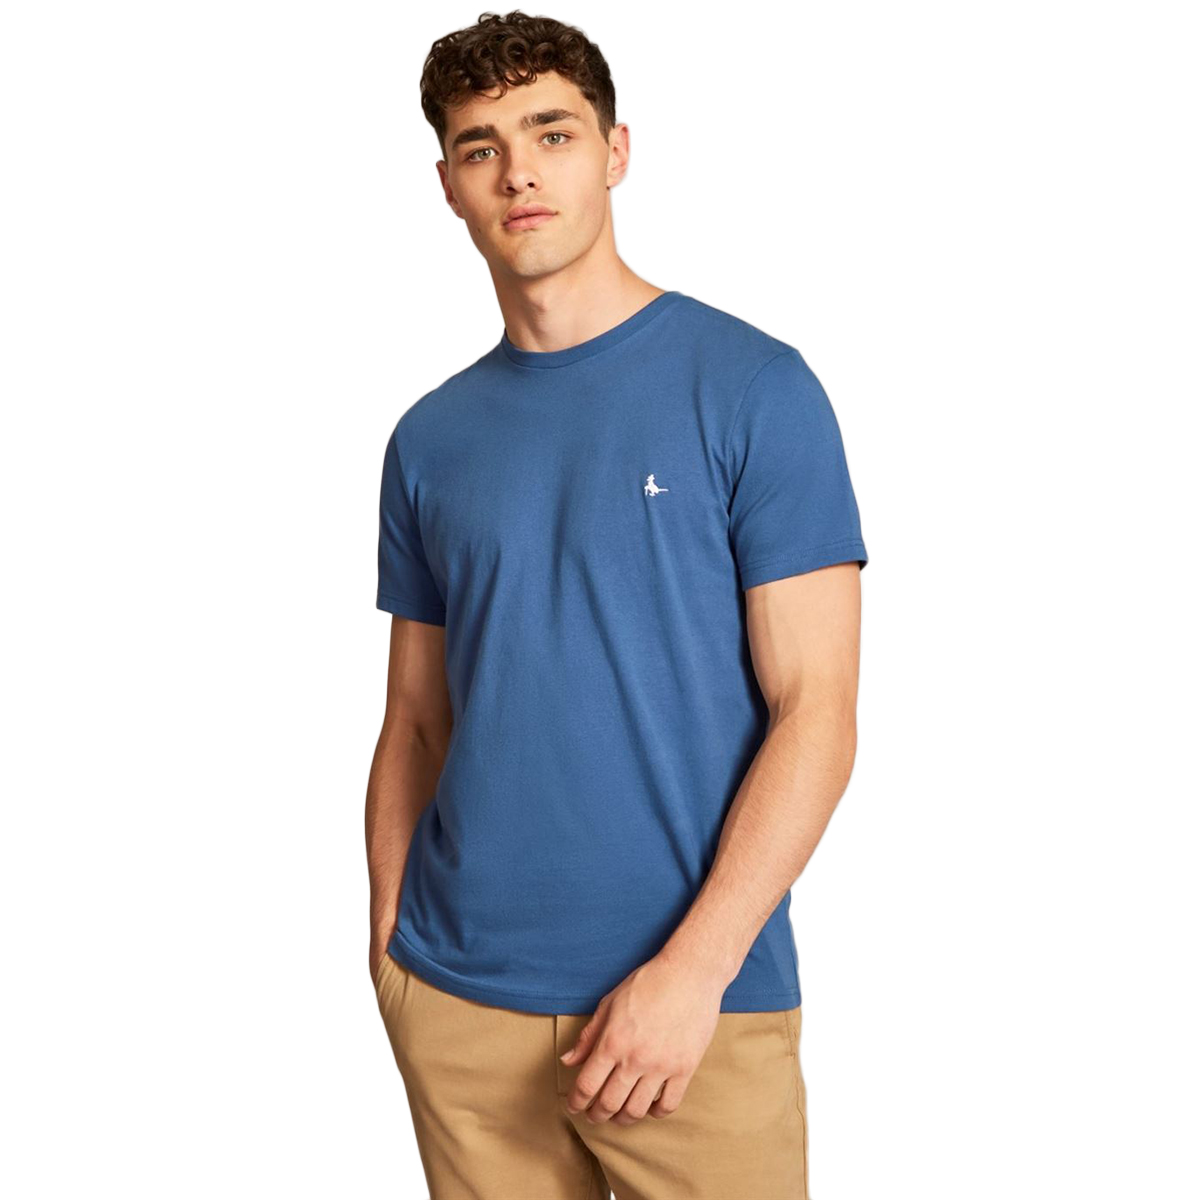 Jack Wills Men's Sandleford Short-Sleeve Tee - Blue, M